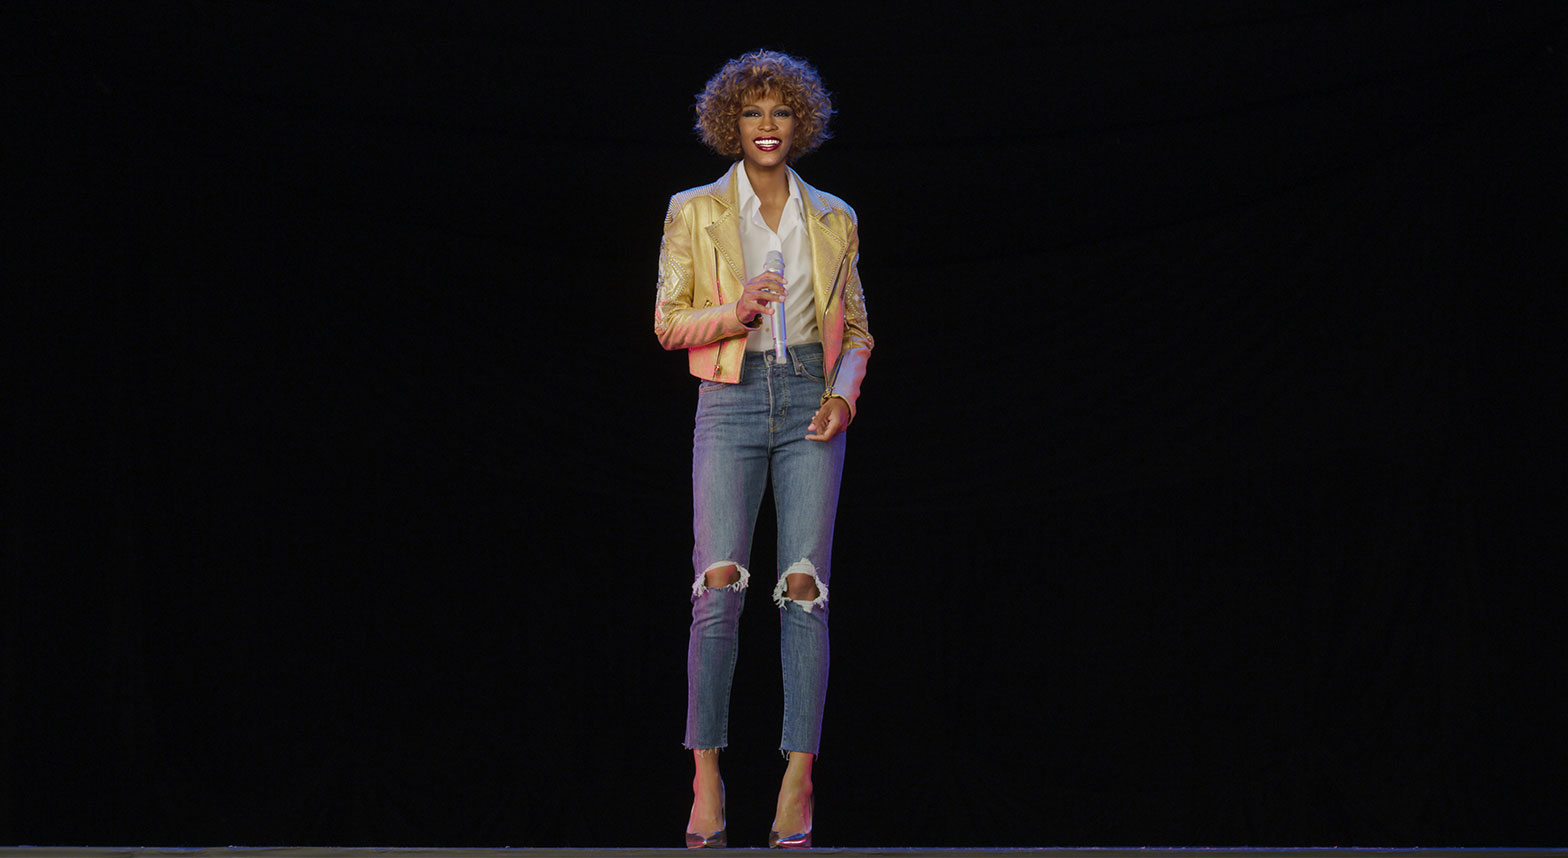 whitney-houston-image2.jpg